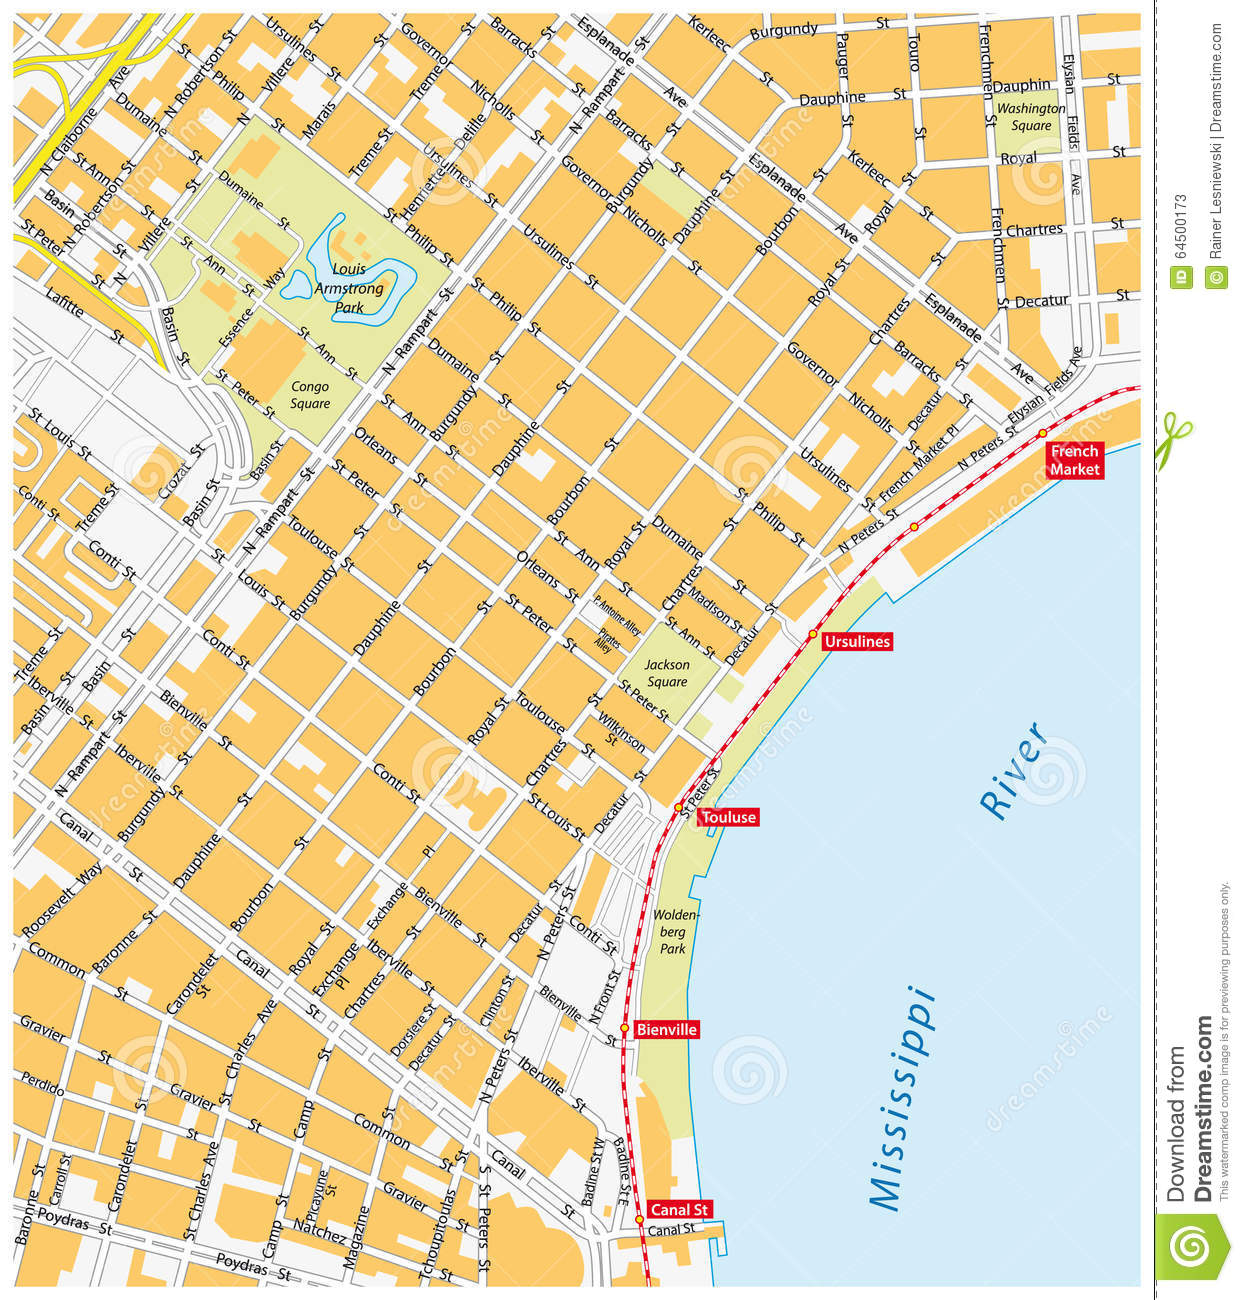 New Orleans French Quarter Tourist Map New Orleans French Quarter - Usa map states new orleans